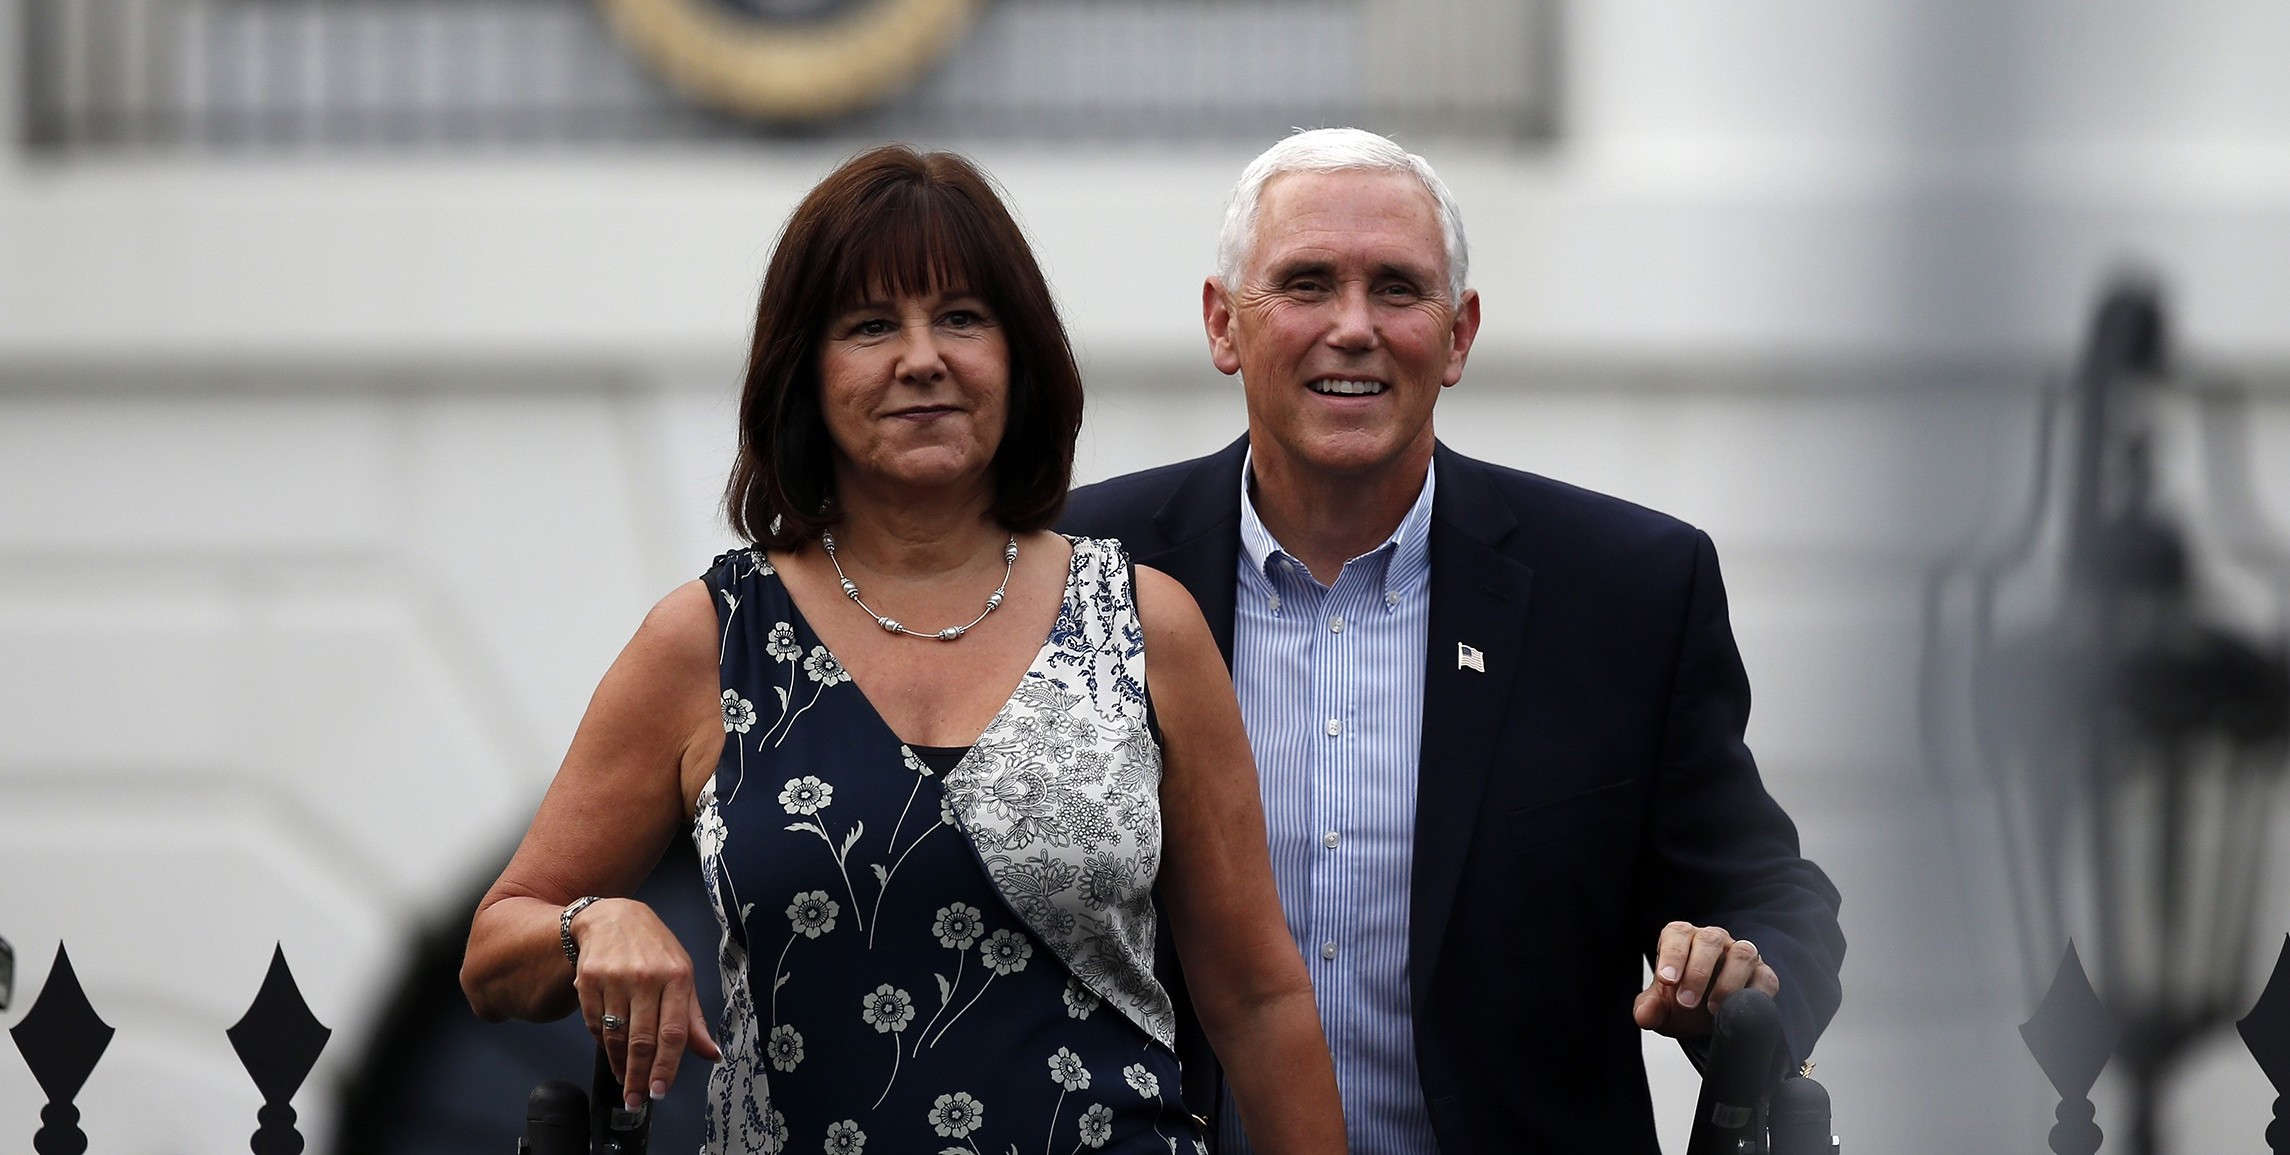 Second Lady of the United States Karen Pence with her husband, Vice President Mike Pence ( Image )